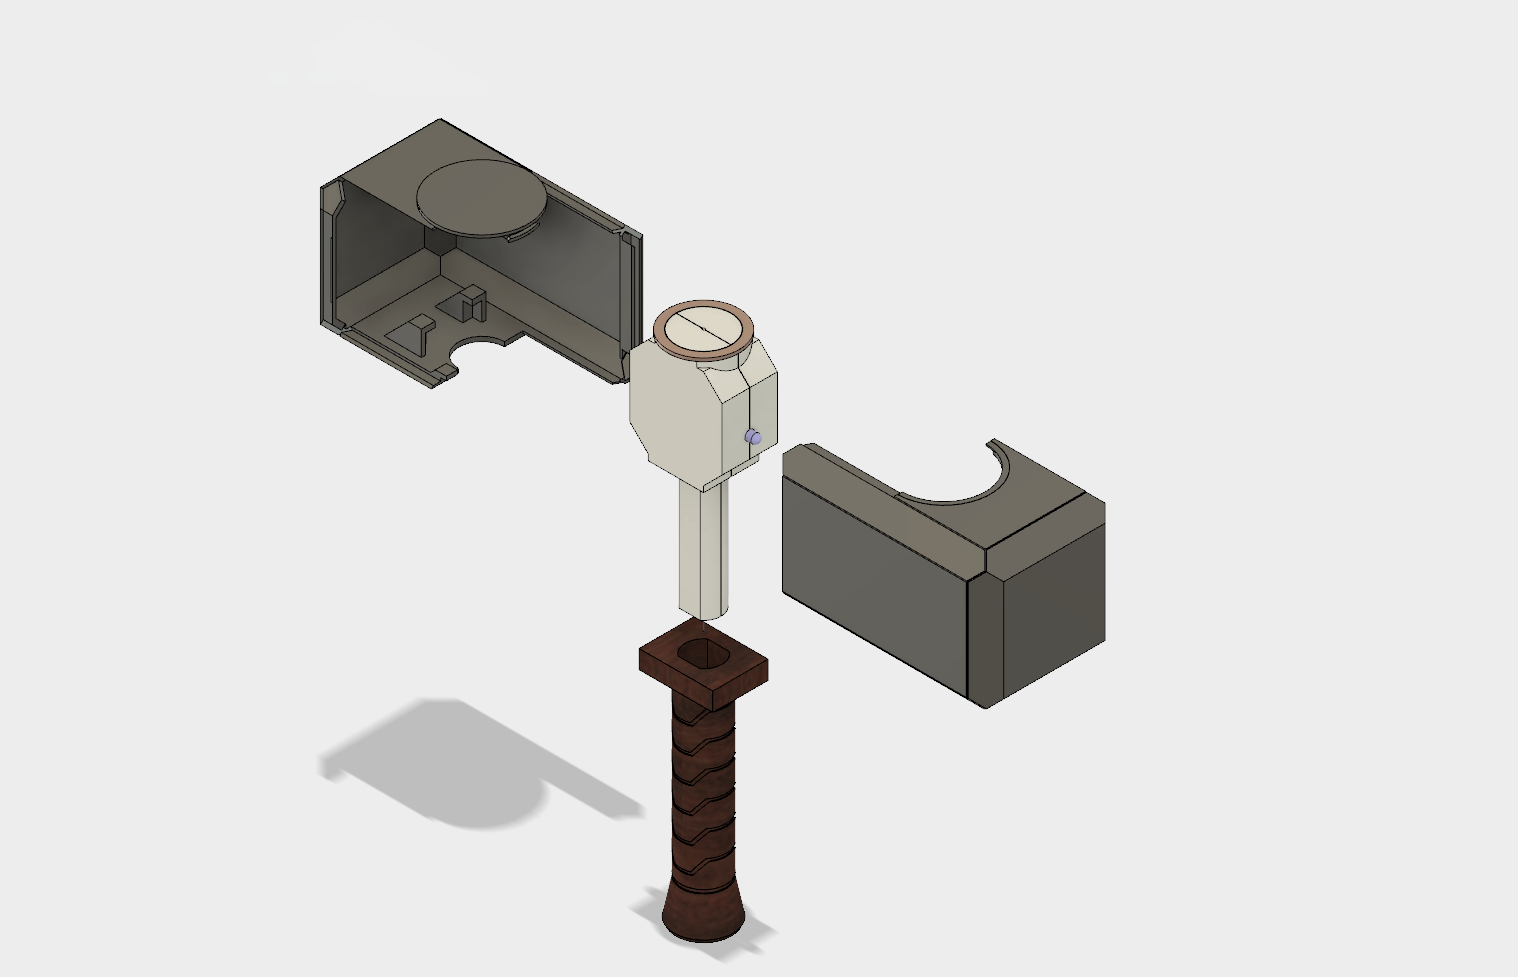 I really like the way the hammer fits together. A small part of the design was serendipitous.